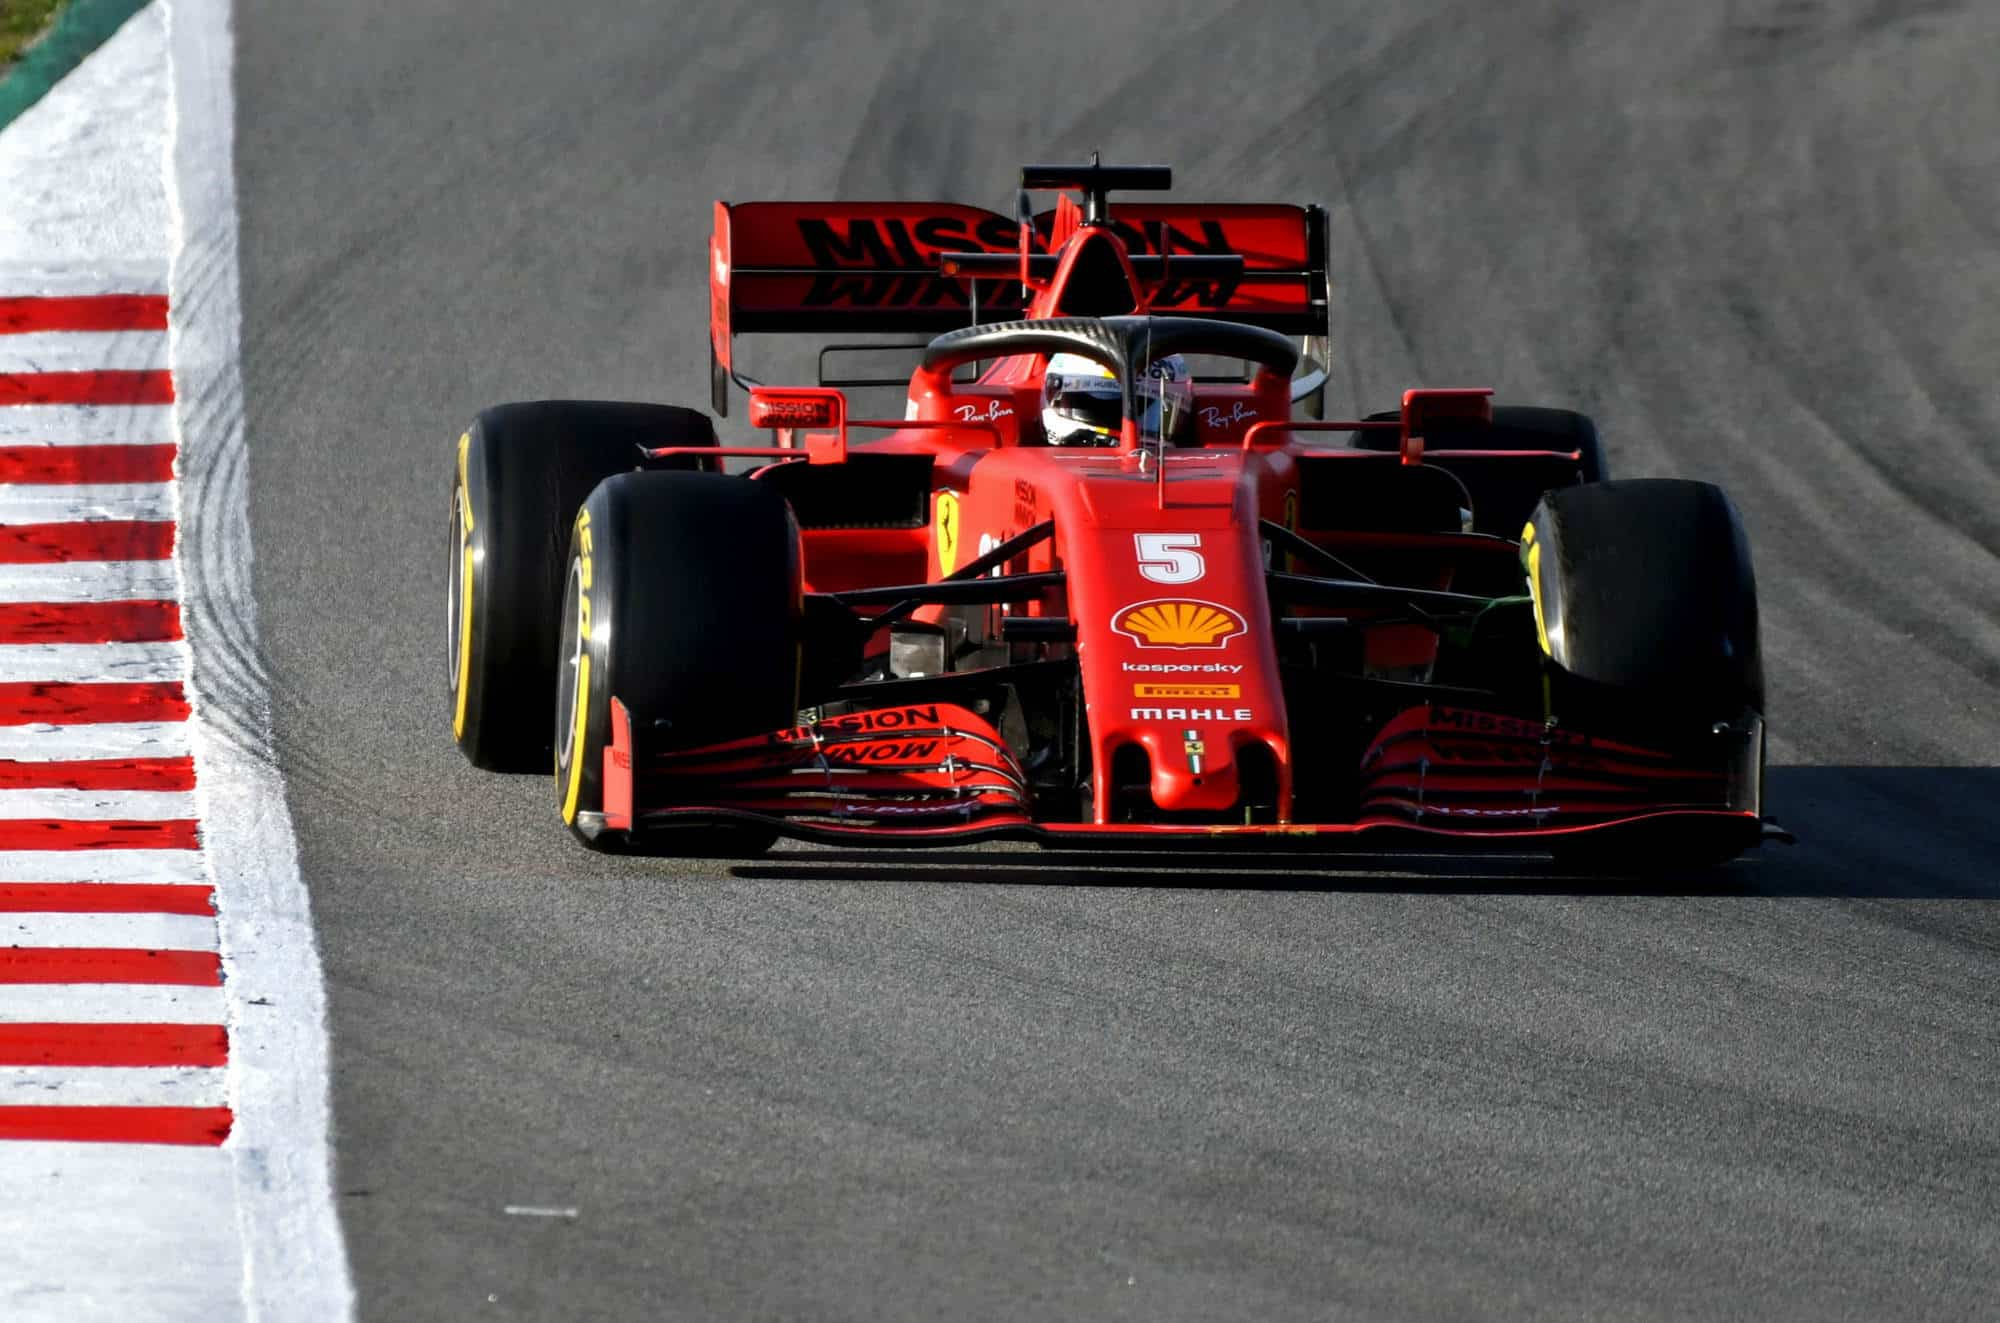 Sebastian Vettel Ferrari SF1000 Barcelona Test 2 Day 2 front C3 Pirelli Photo Ferrari